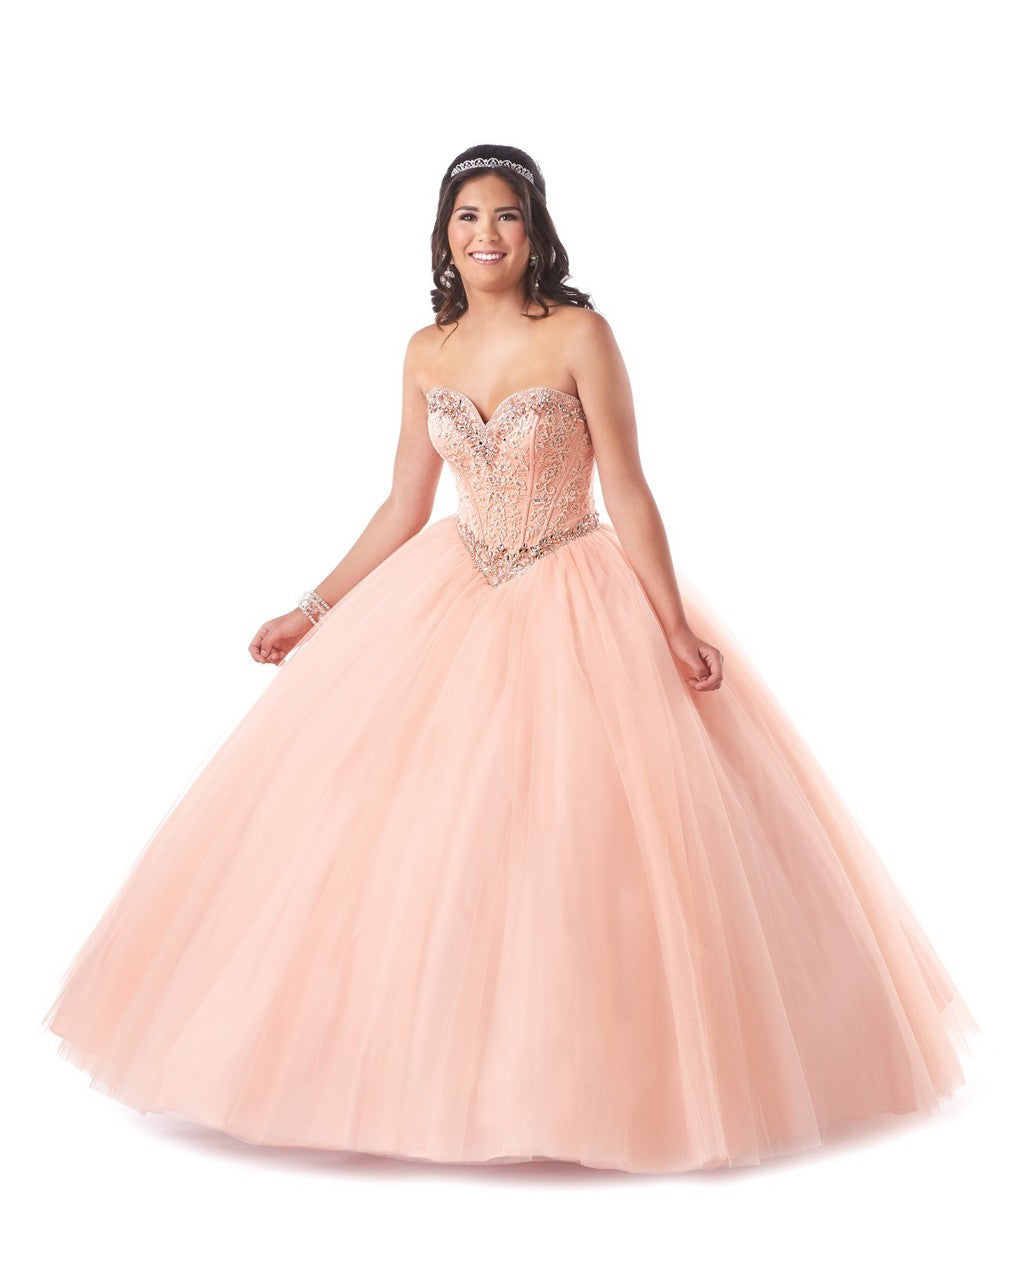 Tulle Quinceañera Ball Gown with Beautifully Beaded Bodice and Co ...